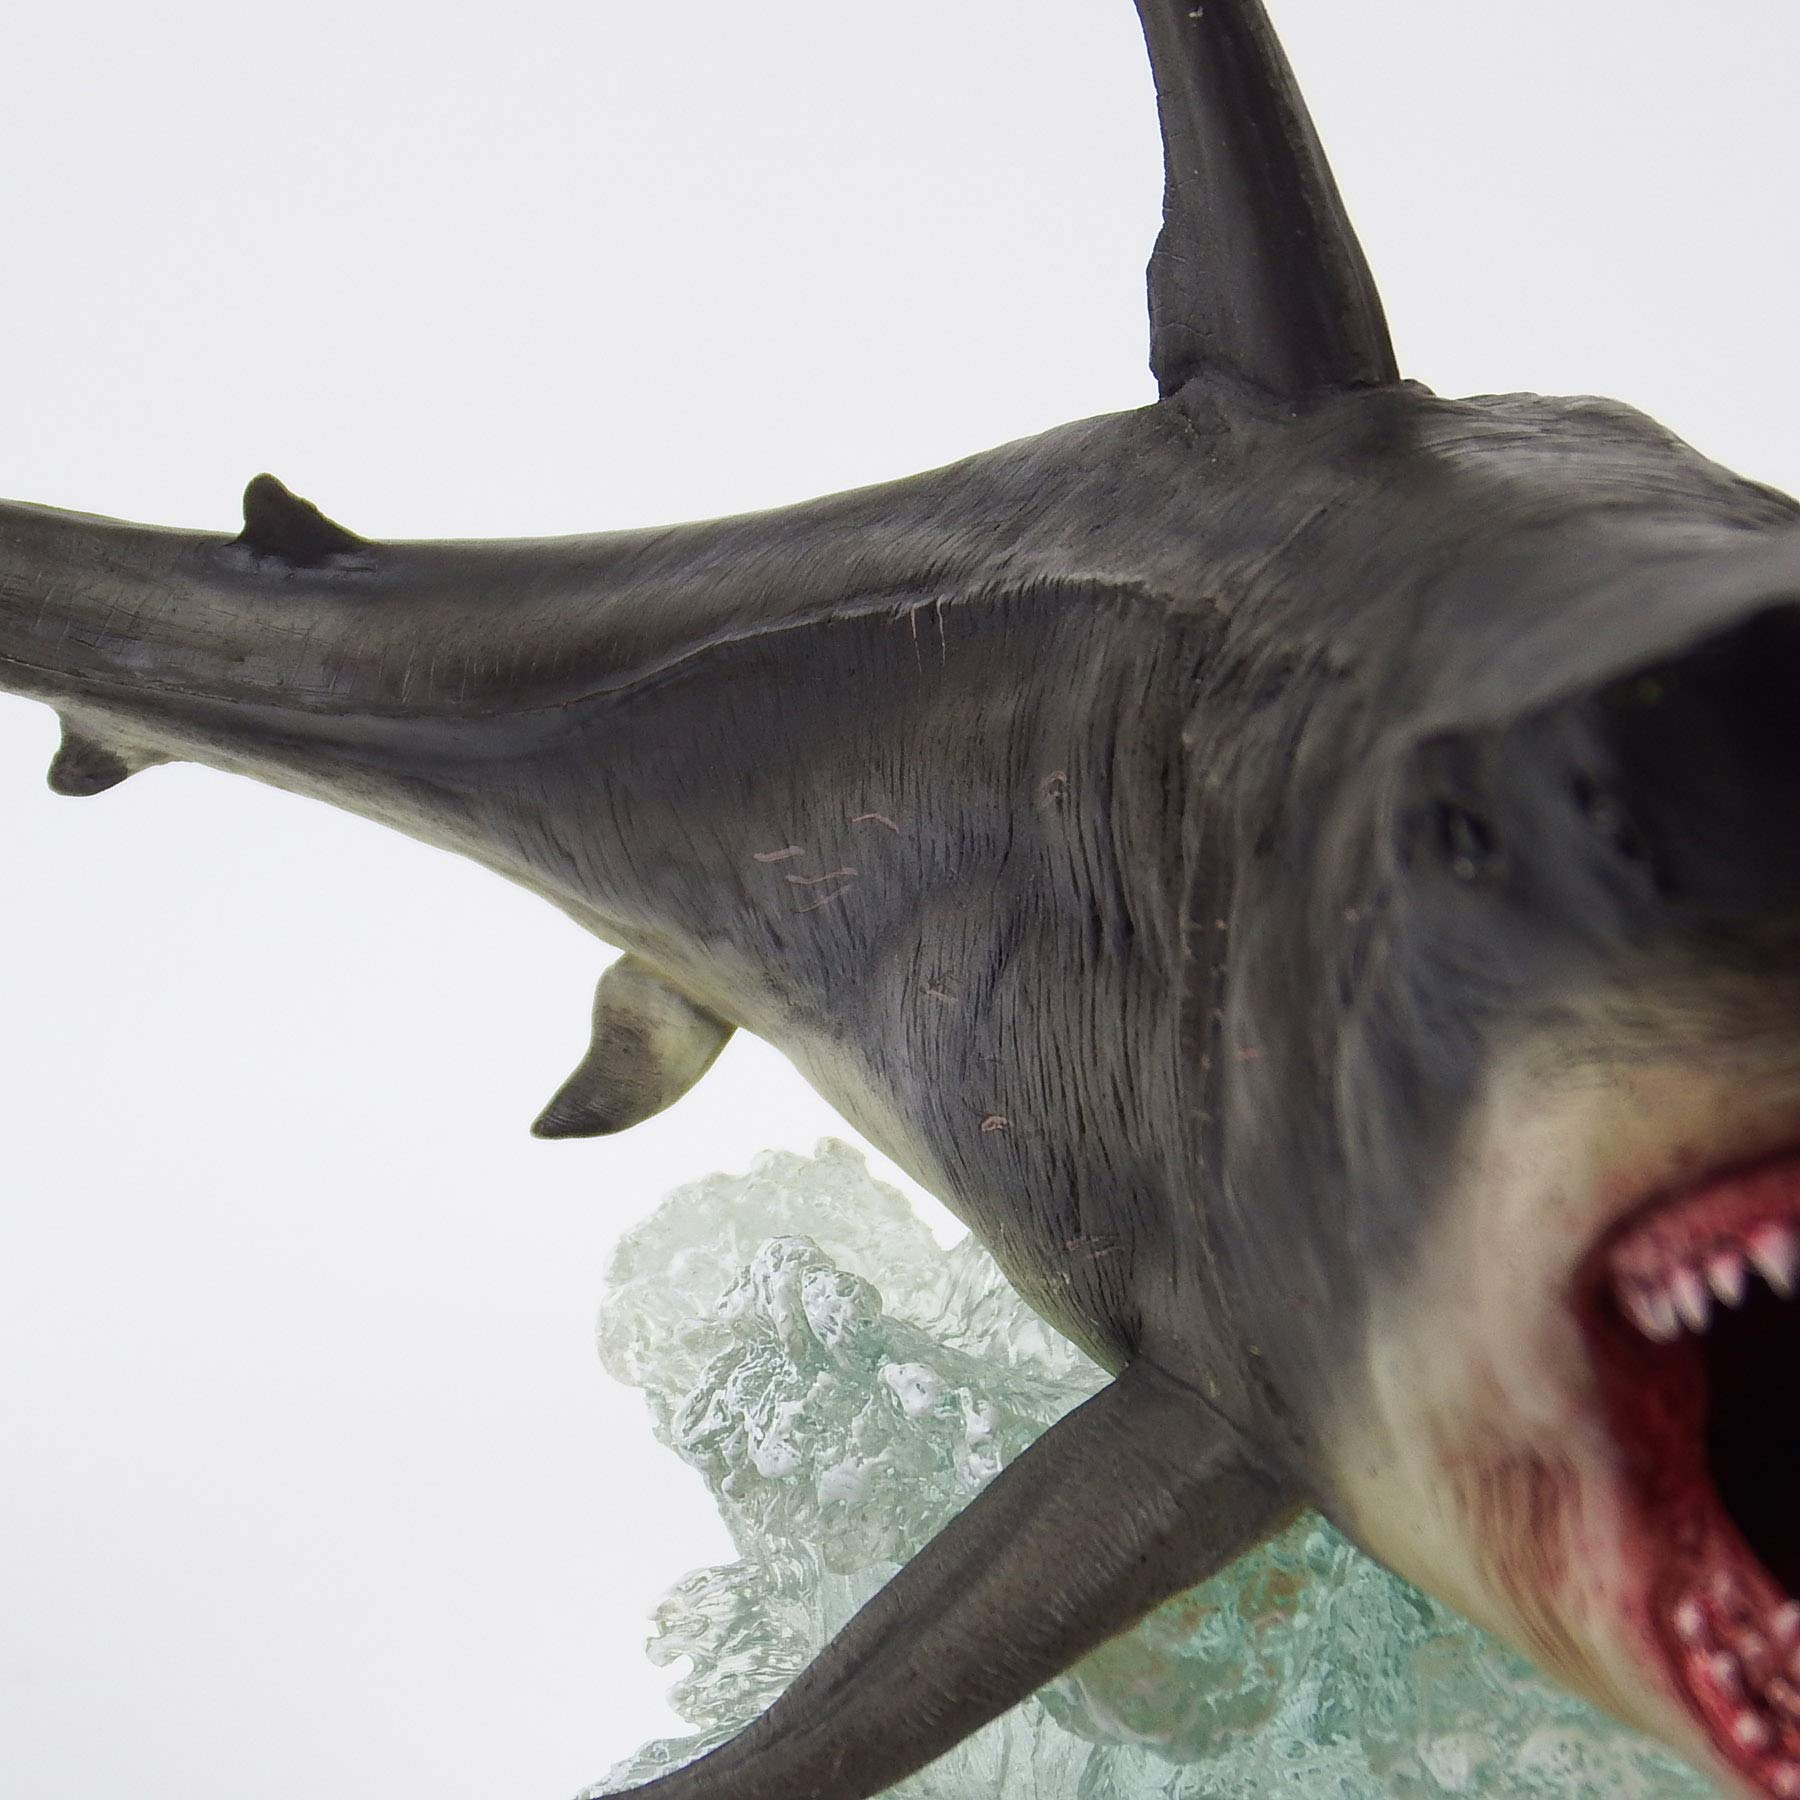 Megalodon Toy Shark Statue Figurine The MEG Paleontology Collectibles Oceanic Nautical Display by GemShark Collectiobles (Image #8)